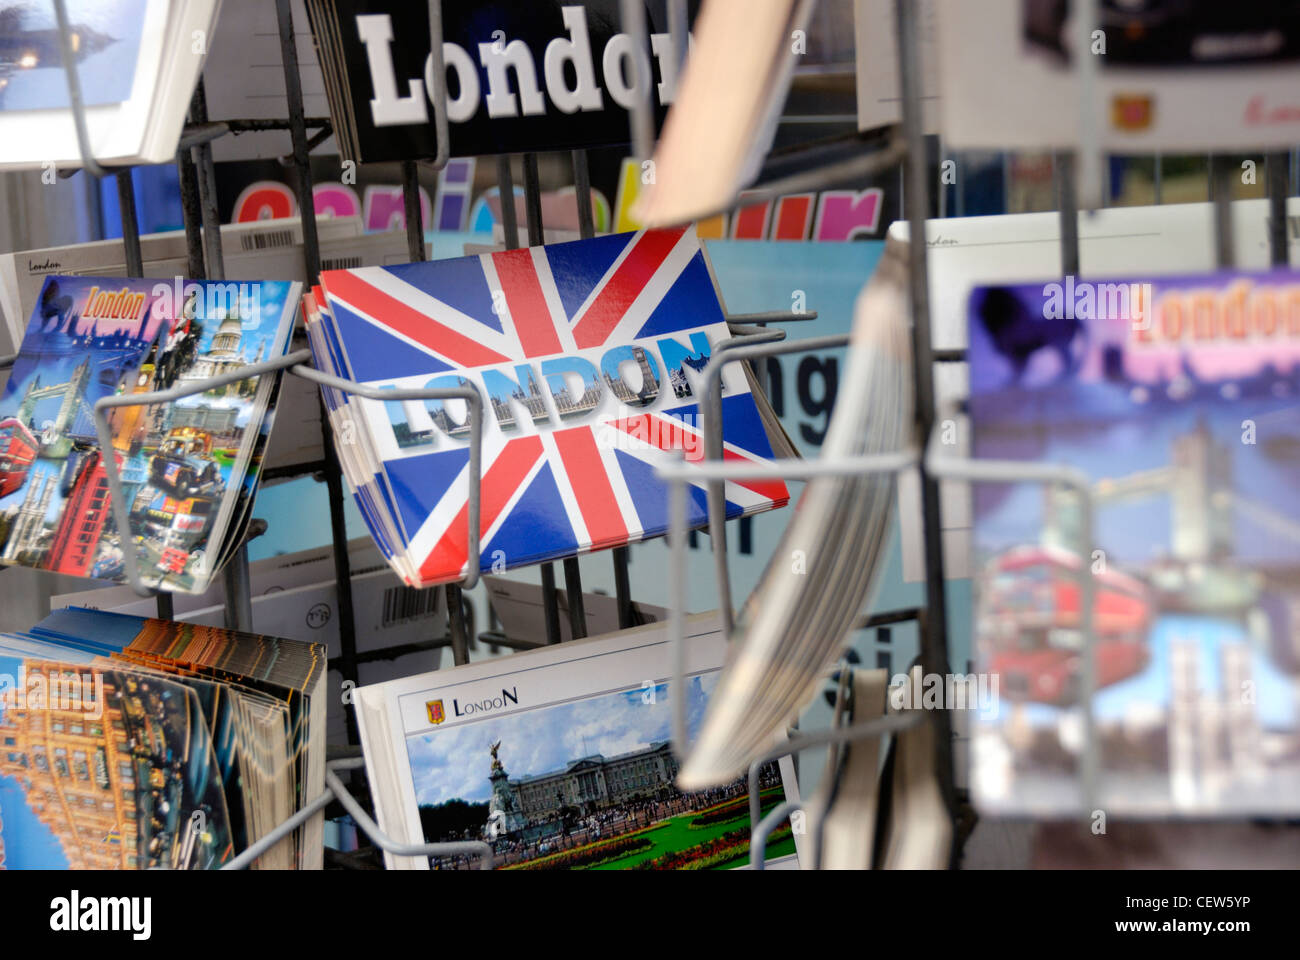 Postcards of London - Stock Image